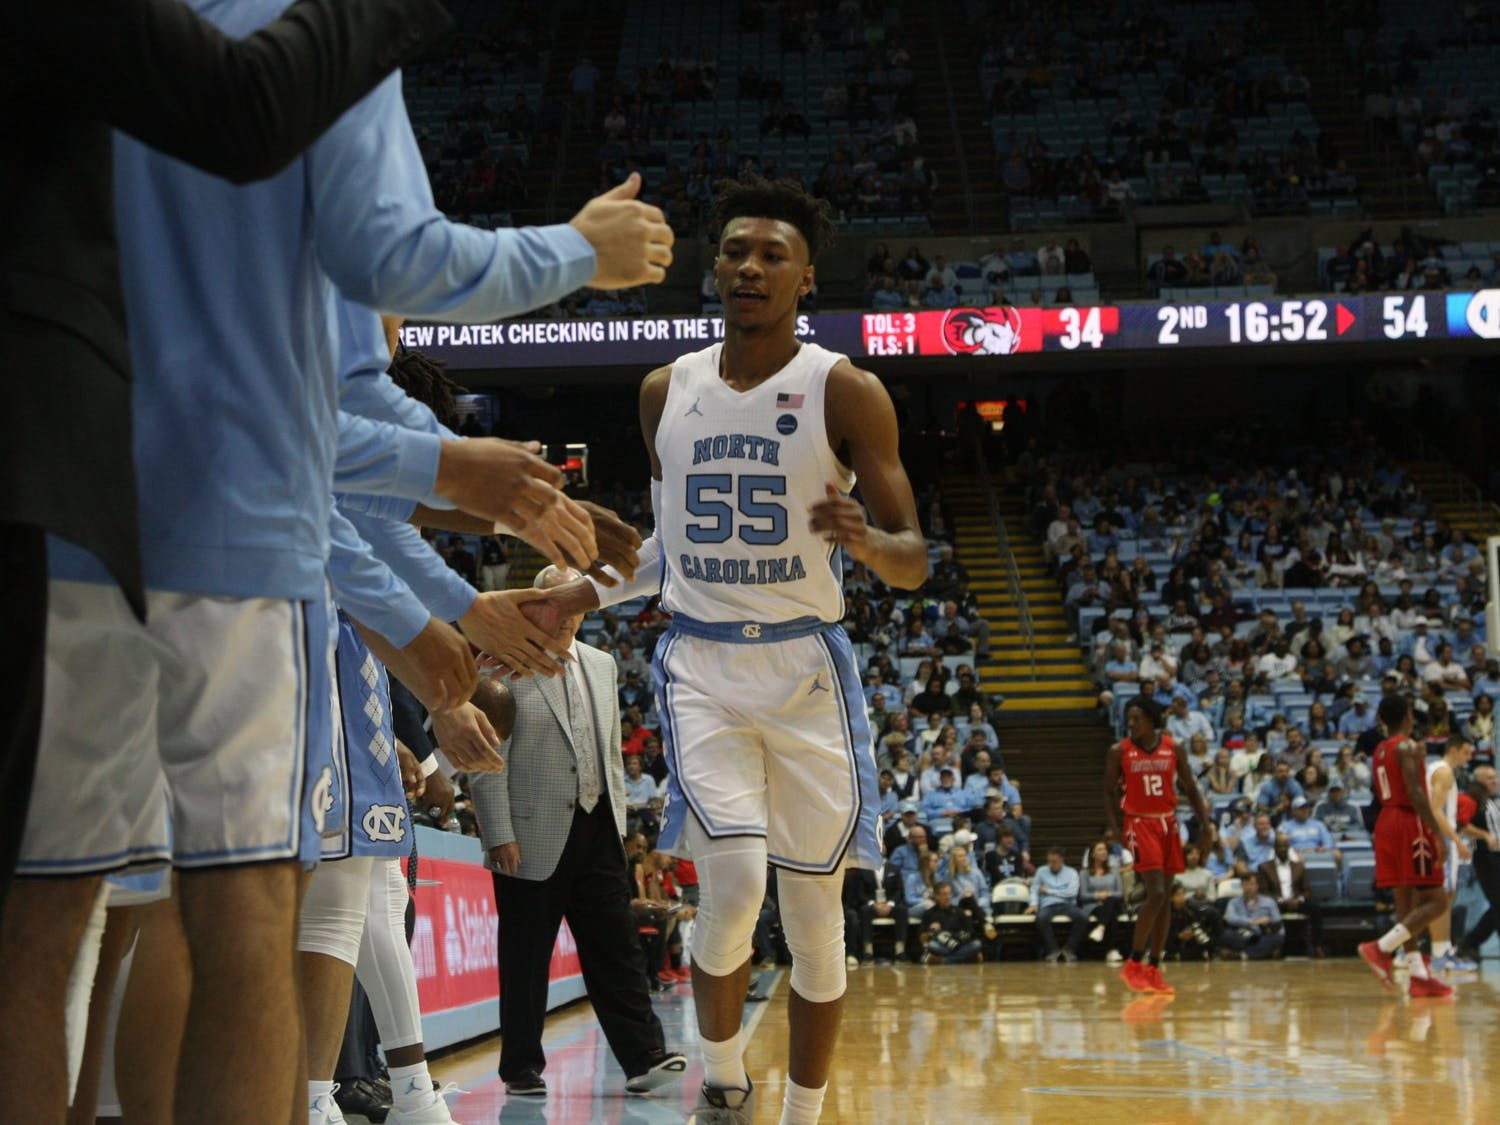 Graduate guard Christian Keeling (55) daps up his teammates during the exhibition game against Winston Salem State in the Smith Center on Friday, Nov. 1, 2019. UNC beat WSSU 96-61.